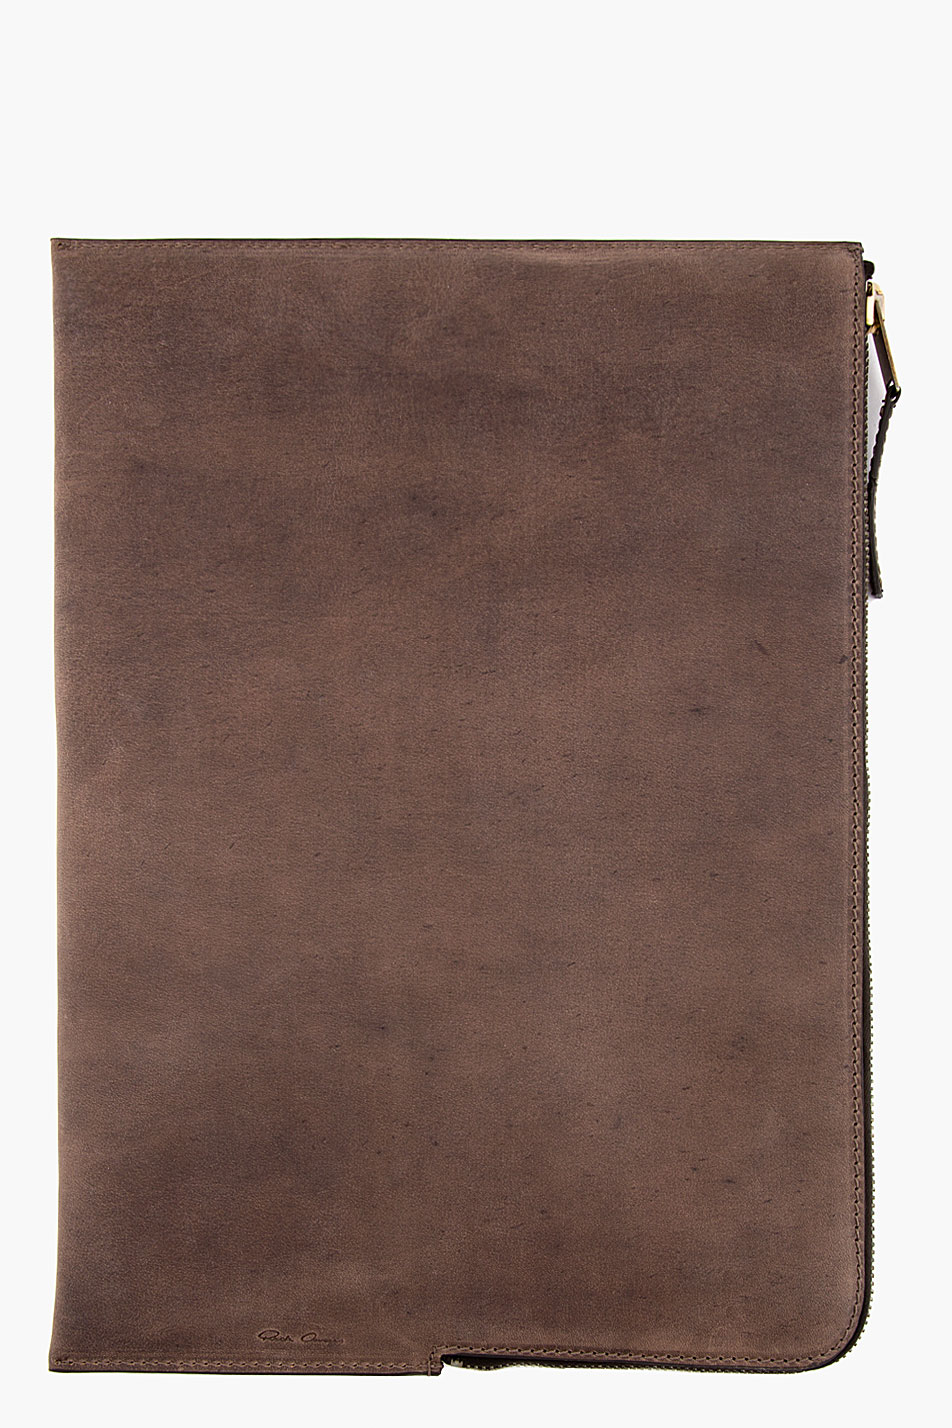 rick owens brown leather document case in brown for men lyst With mens leather document case